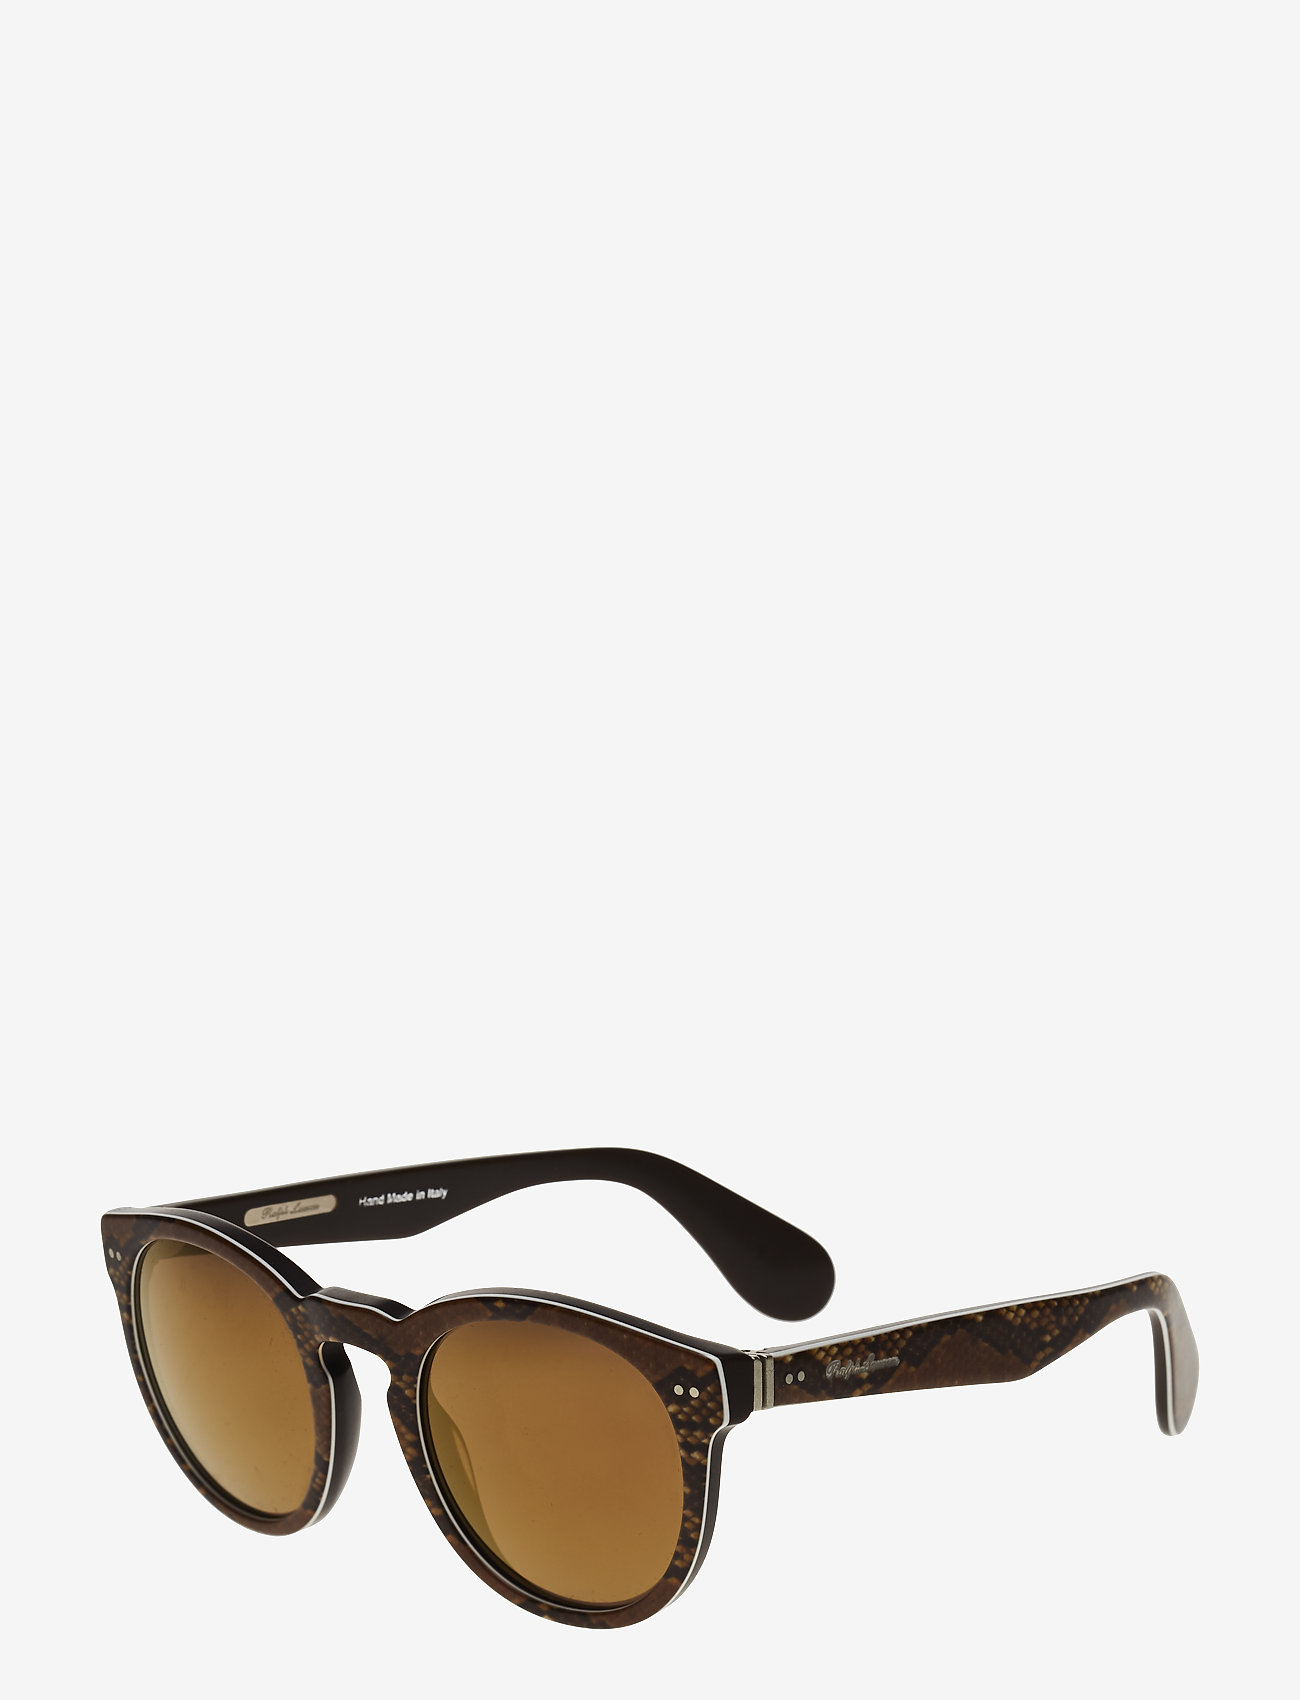 Ralph Ralph Lauren Sunglasses - HERITAGE - rond model - top python on brown vintage - 1